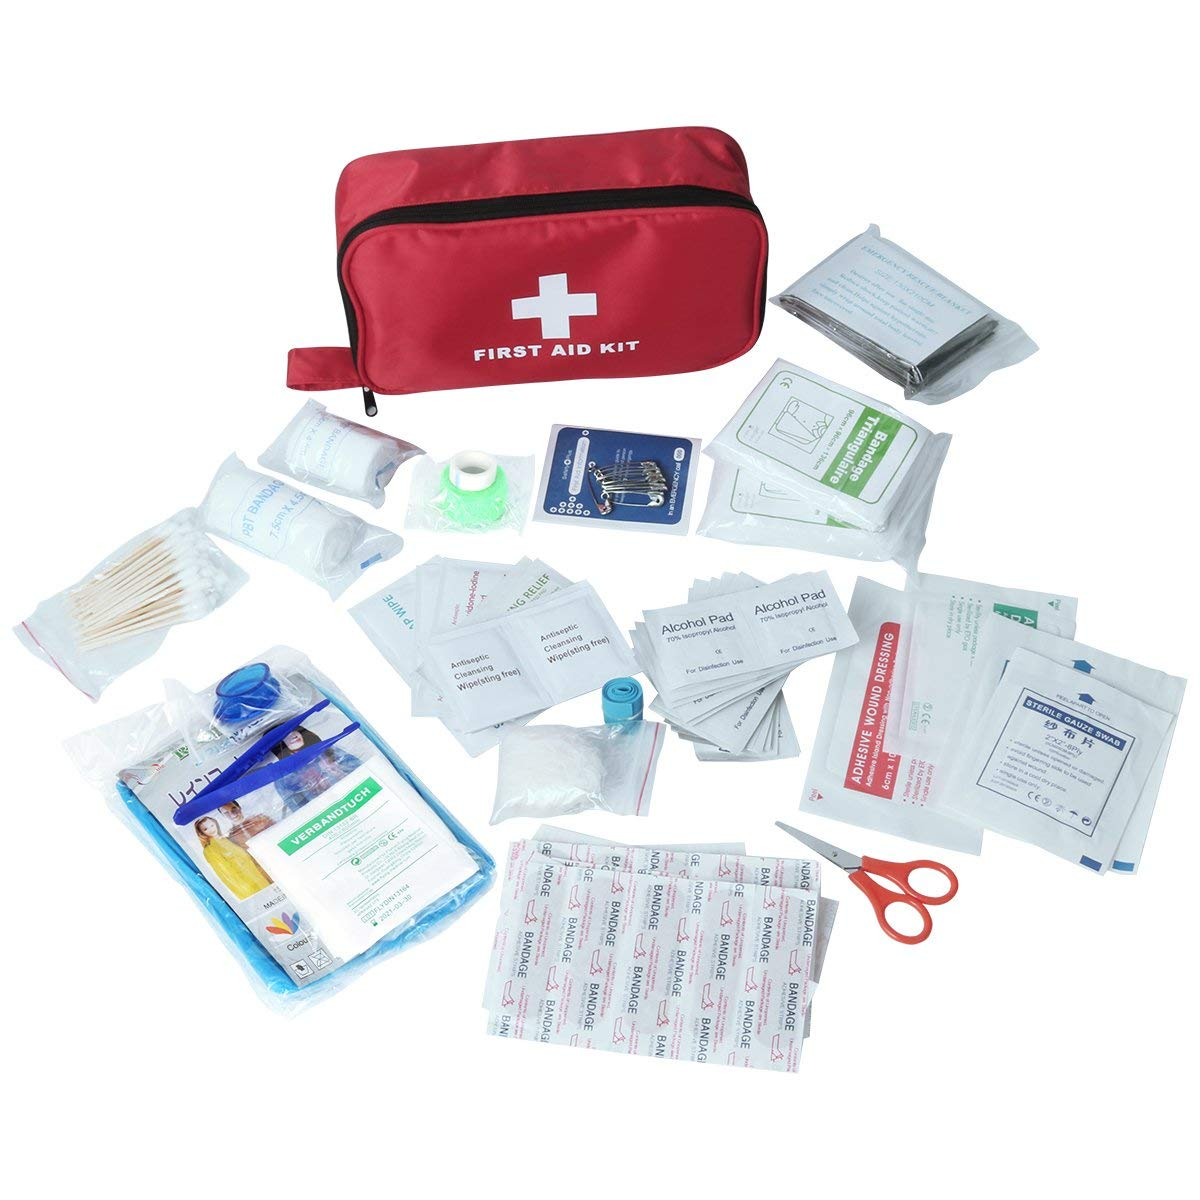 US $11 15 8% OFF|MOOL First Aid Kit, 180 PCS Emergency First Aid Kit  Medical Supplies Trauma Bag Safety First Aid Kit for  Sports/Home/Hiking/Ca-in